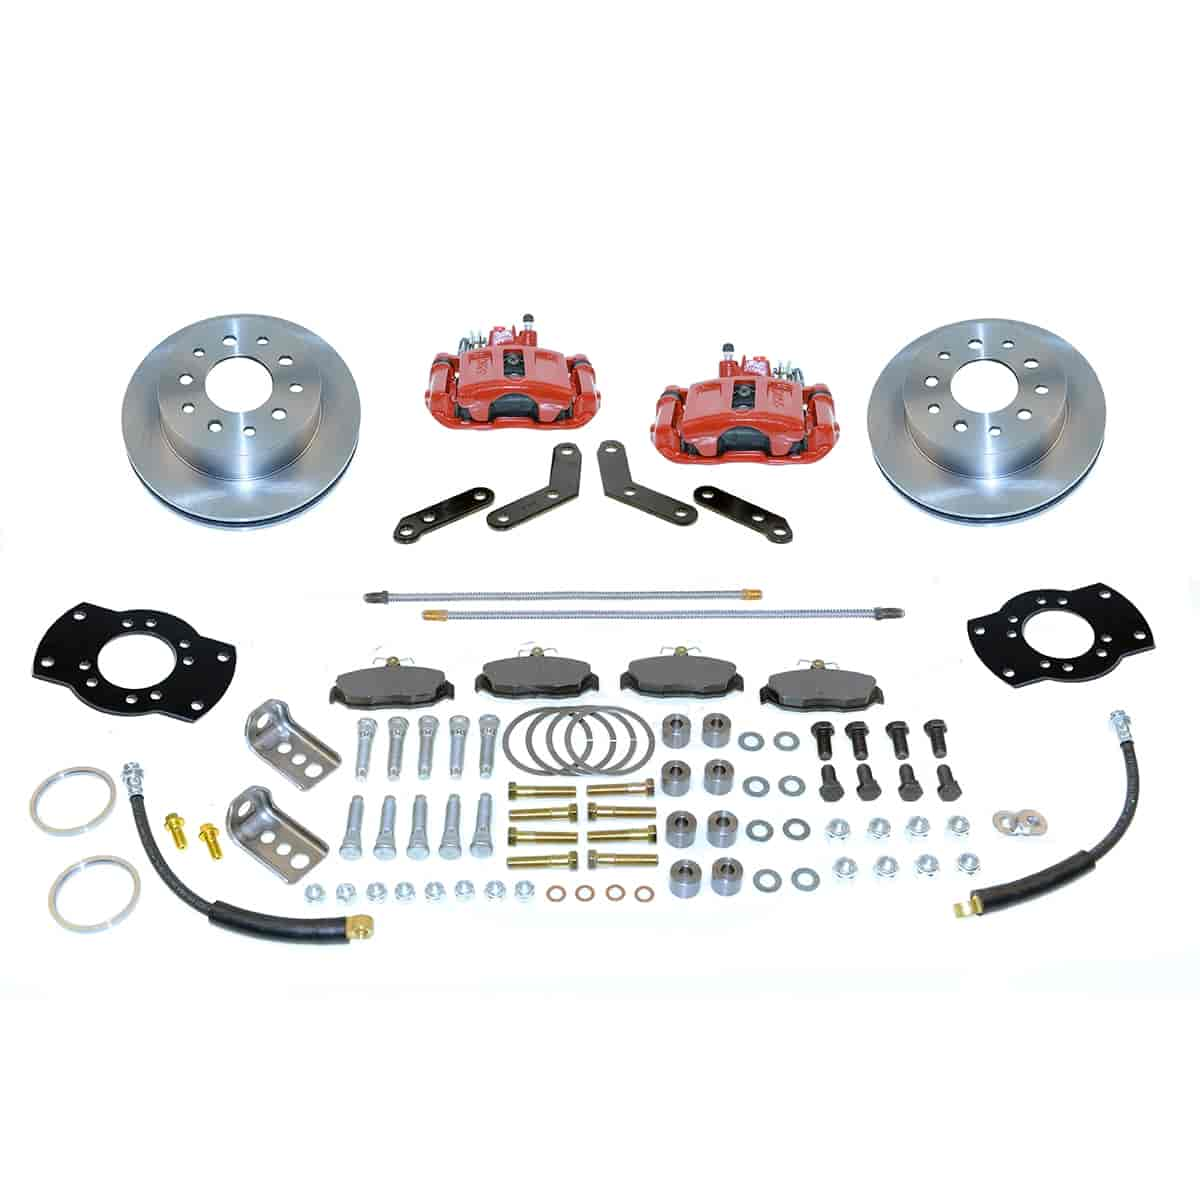 SSBC A117-1R - Stainless Steel Brakes Single Piston Rear Drum to Disc Brake Conversion Kits